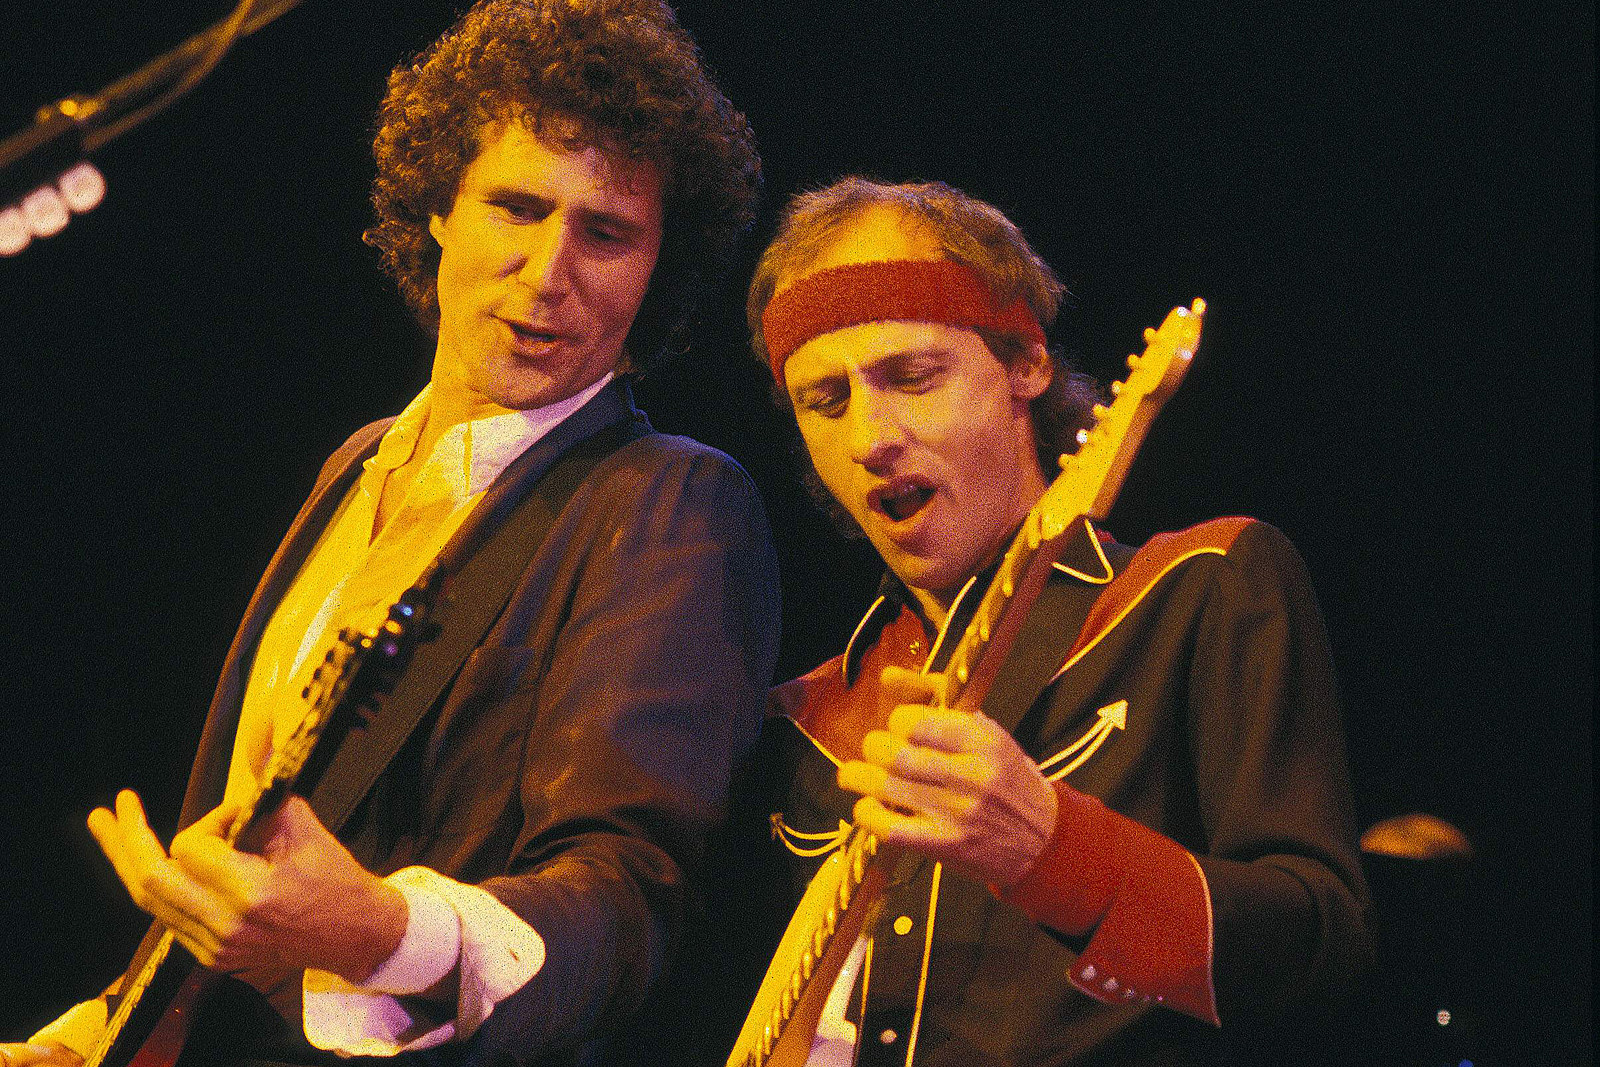 Dire Straits Rock Hall Reunion Comes Down to Mark Knopfler